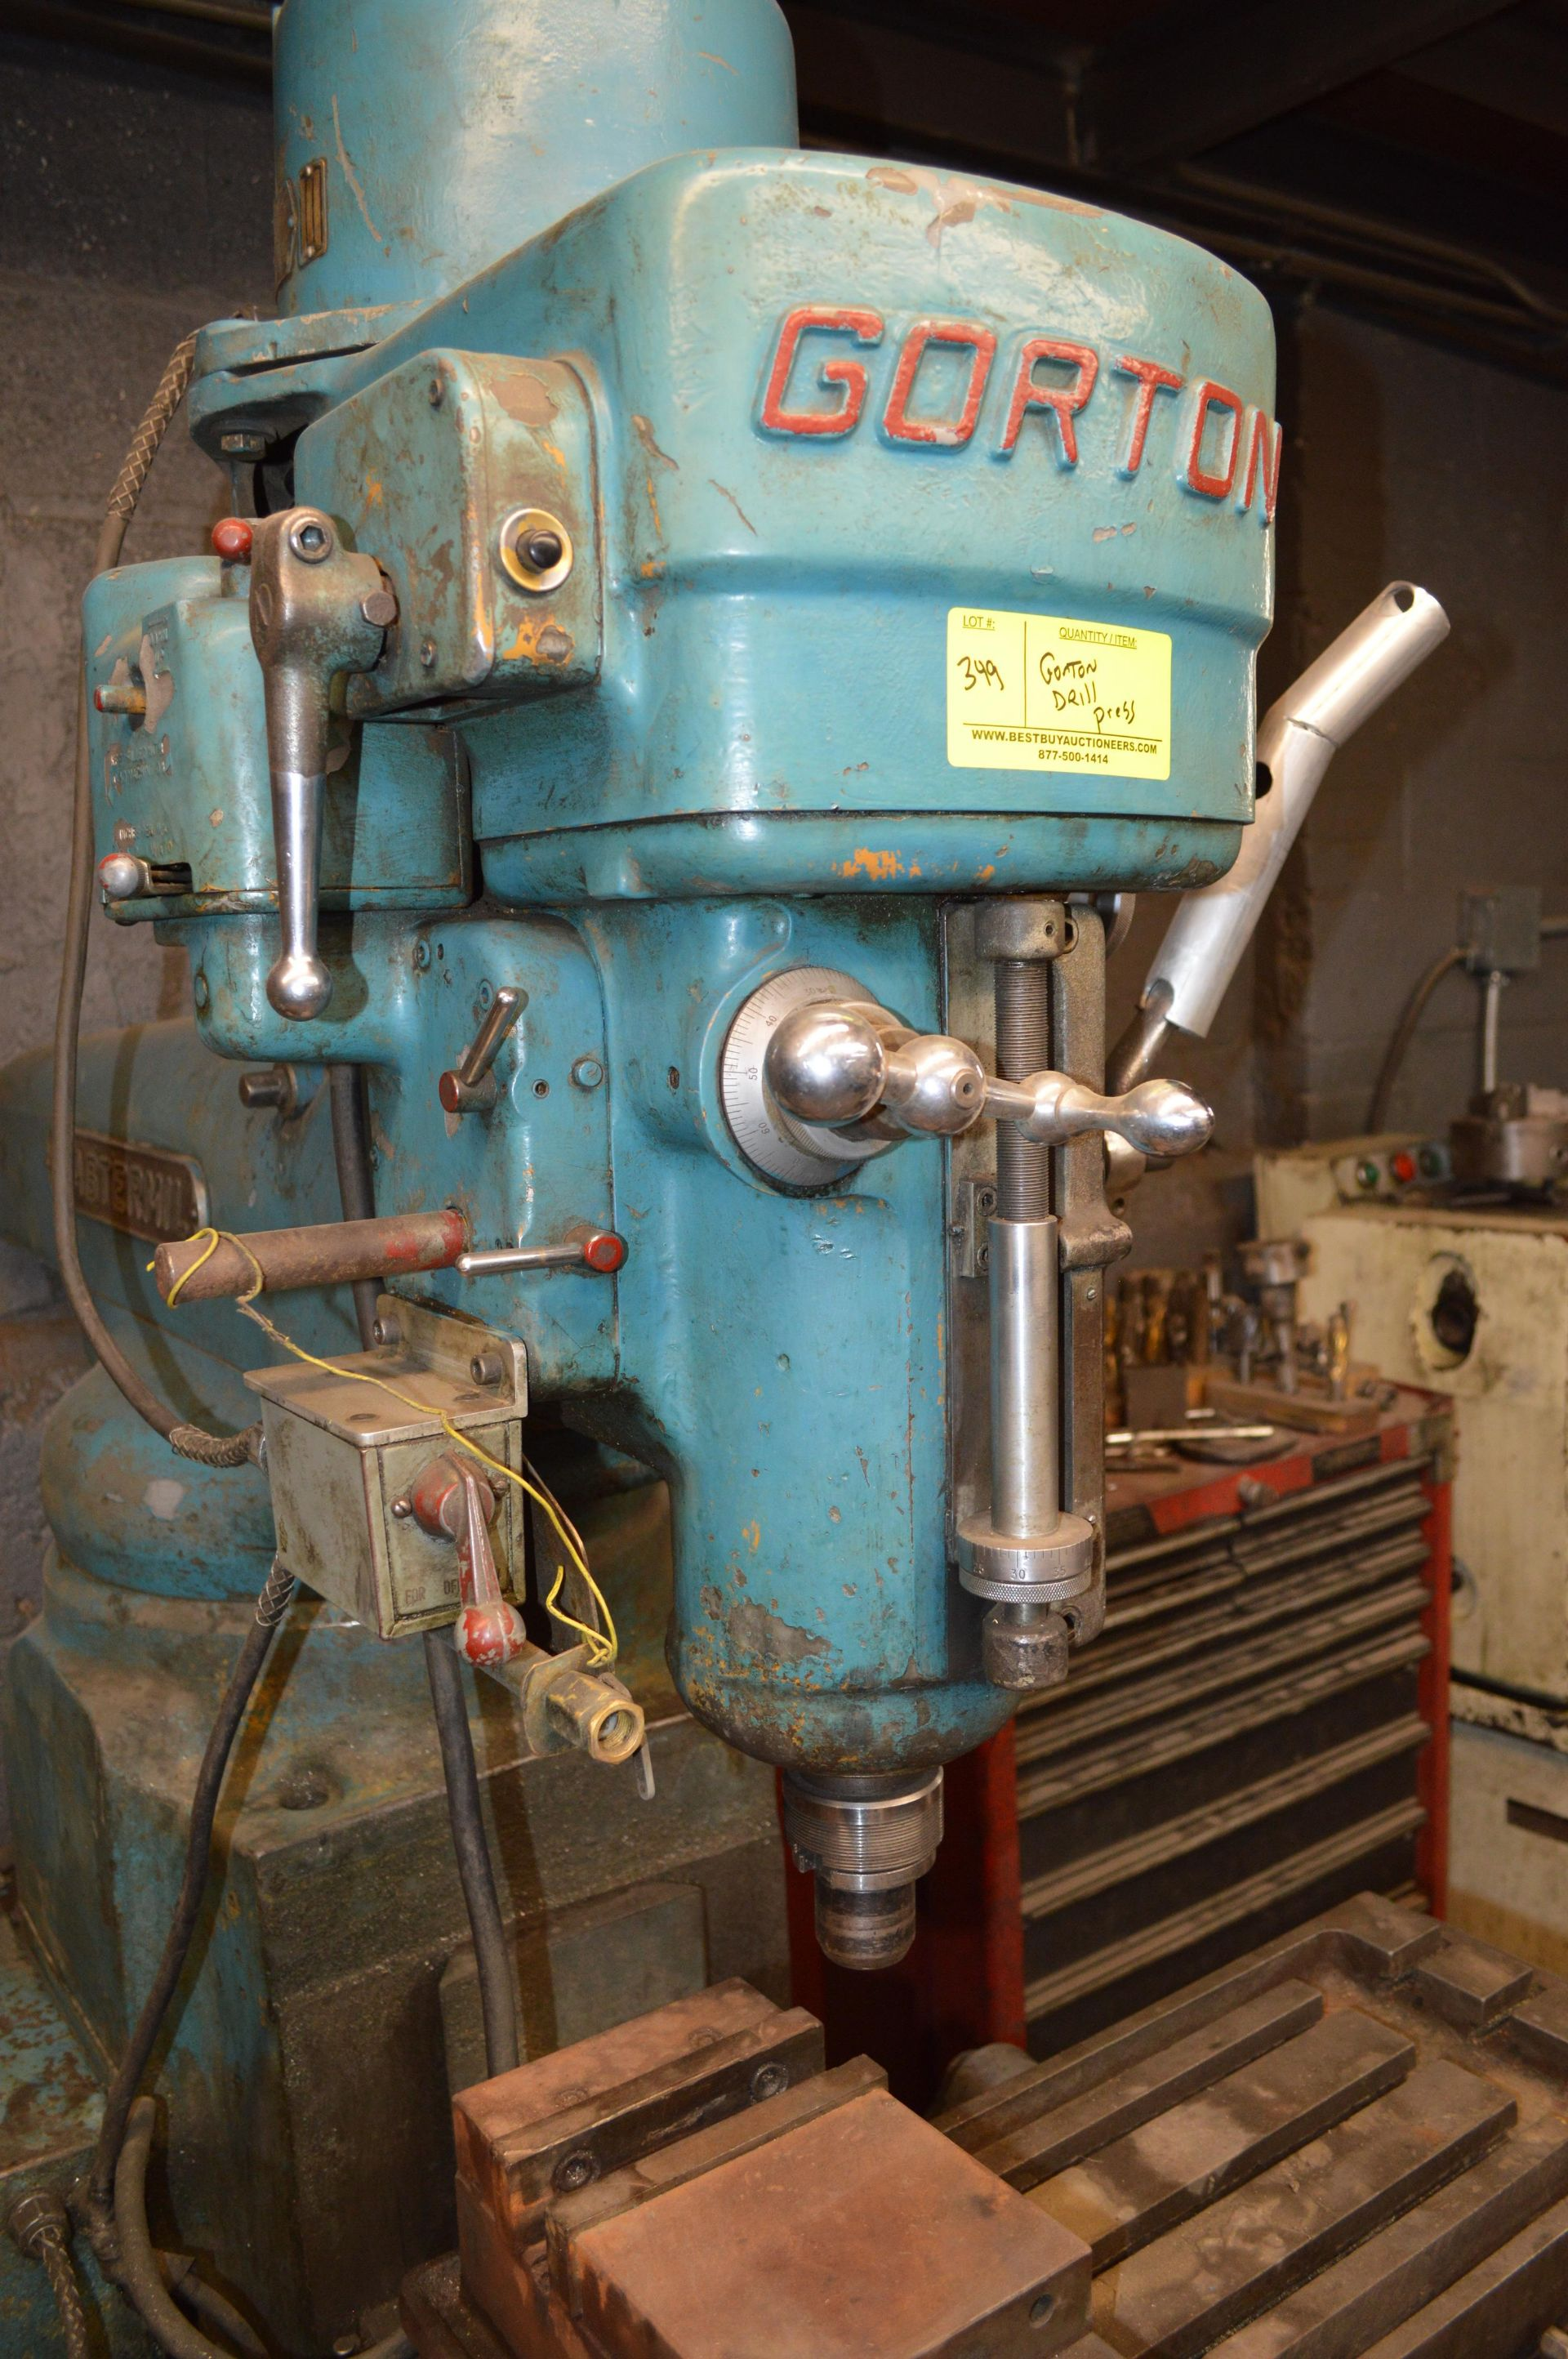 Lot 349 - GORTON DRILL PRESS